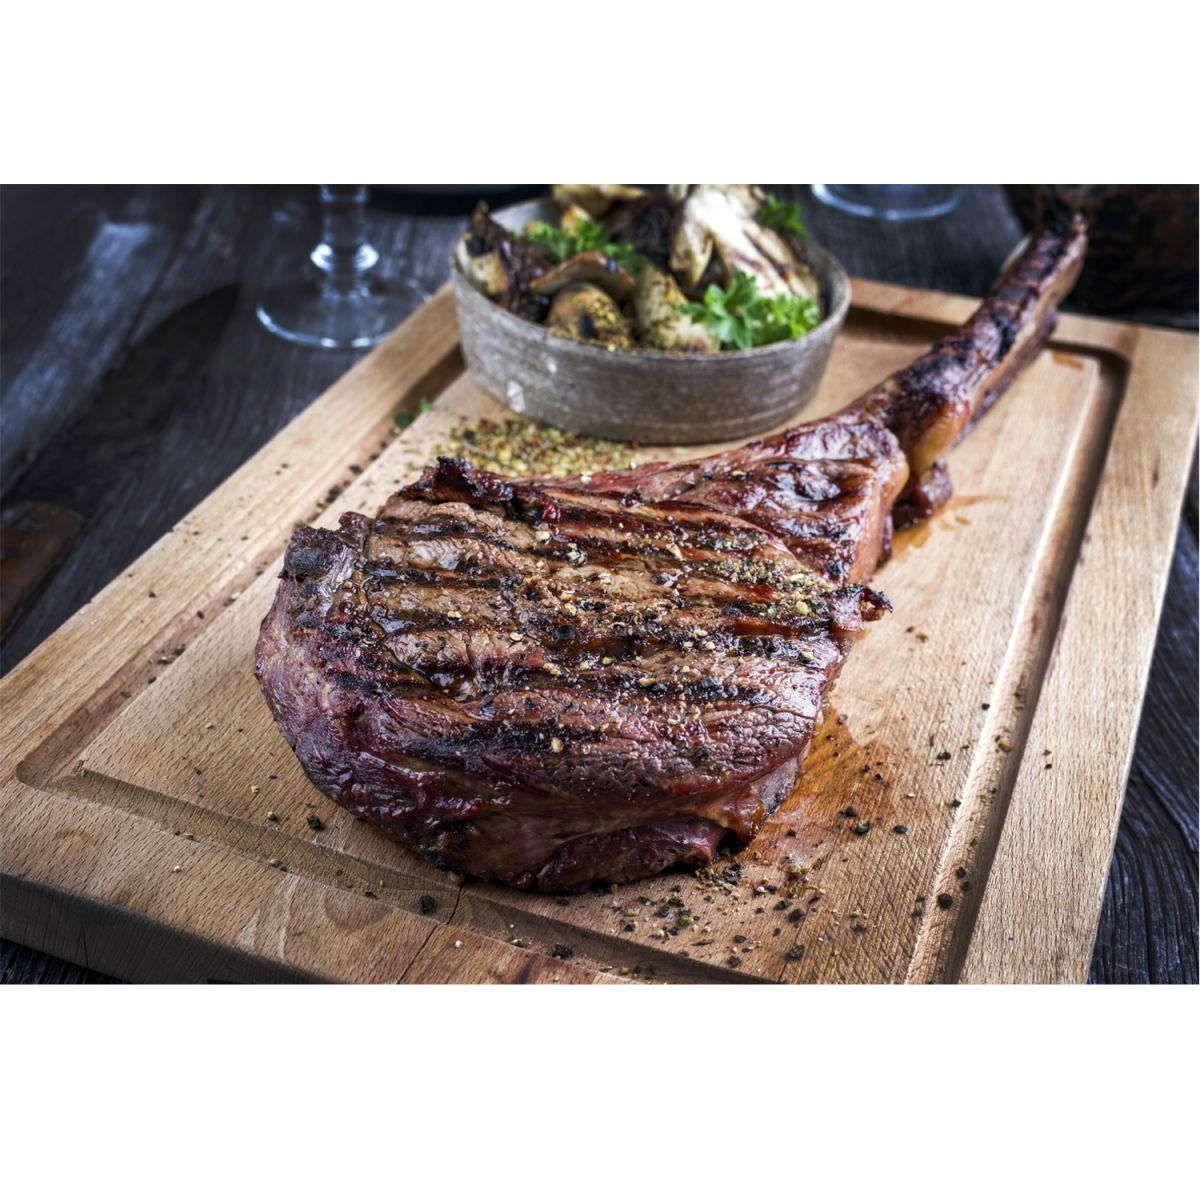 Tomahawk steak Iers ca. 1kg